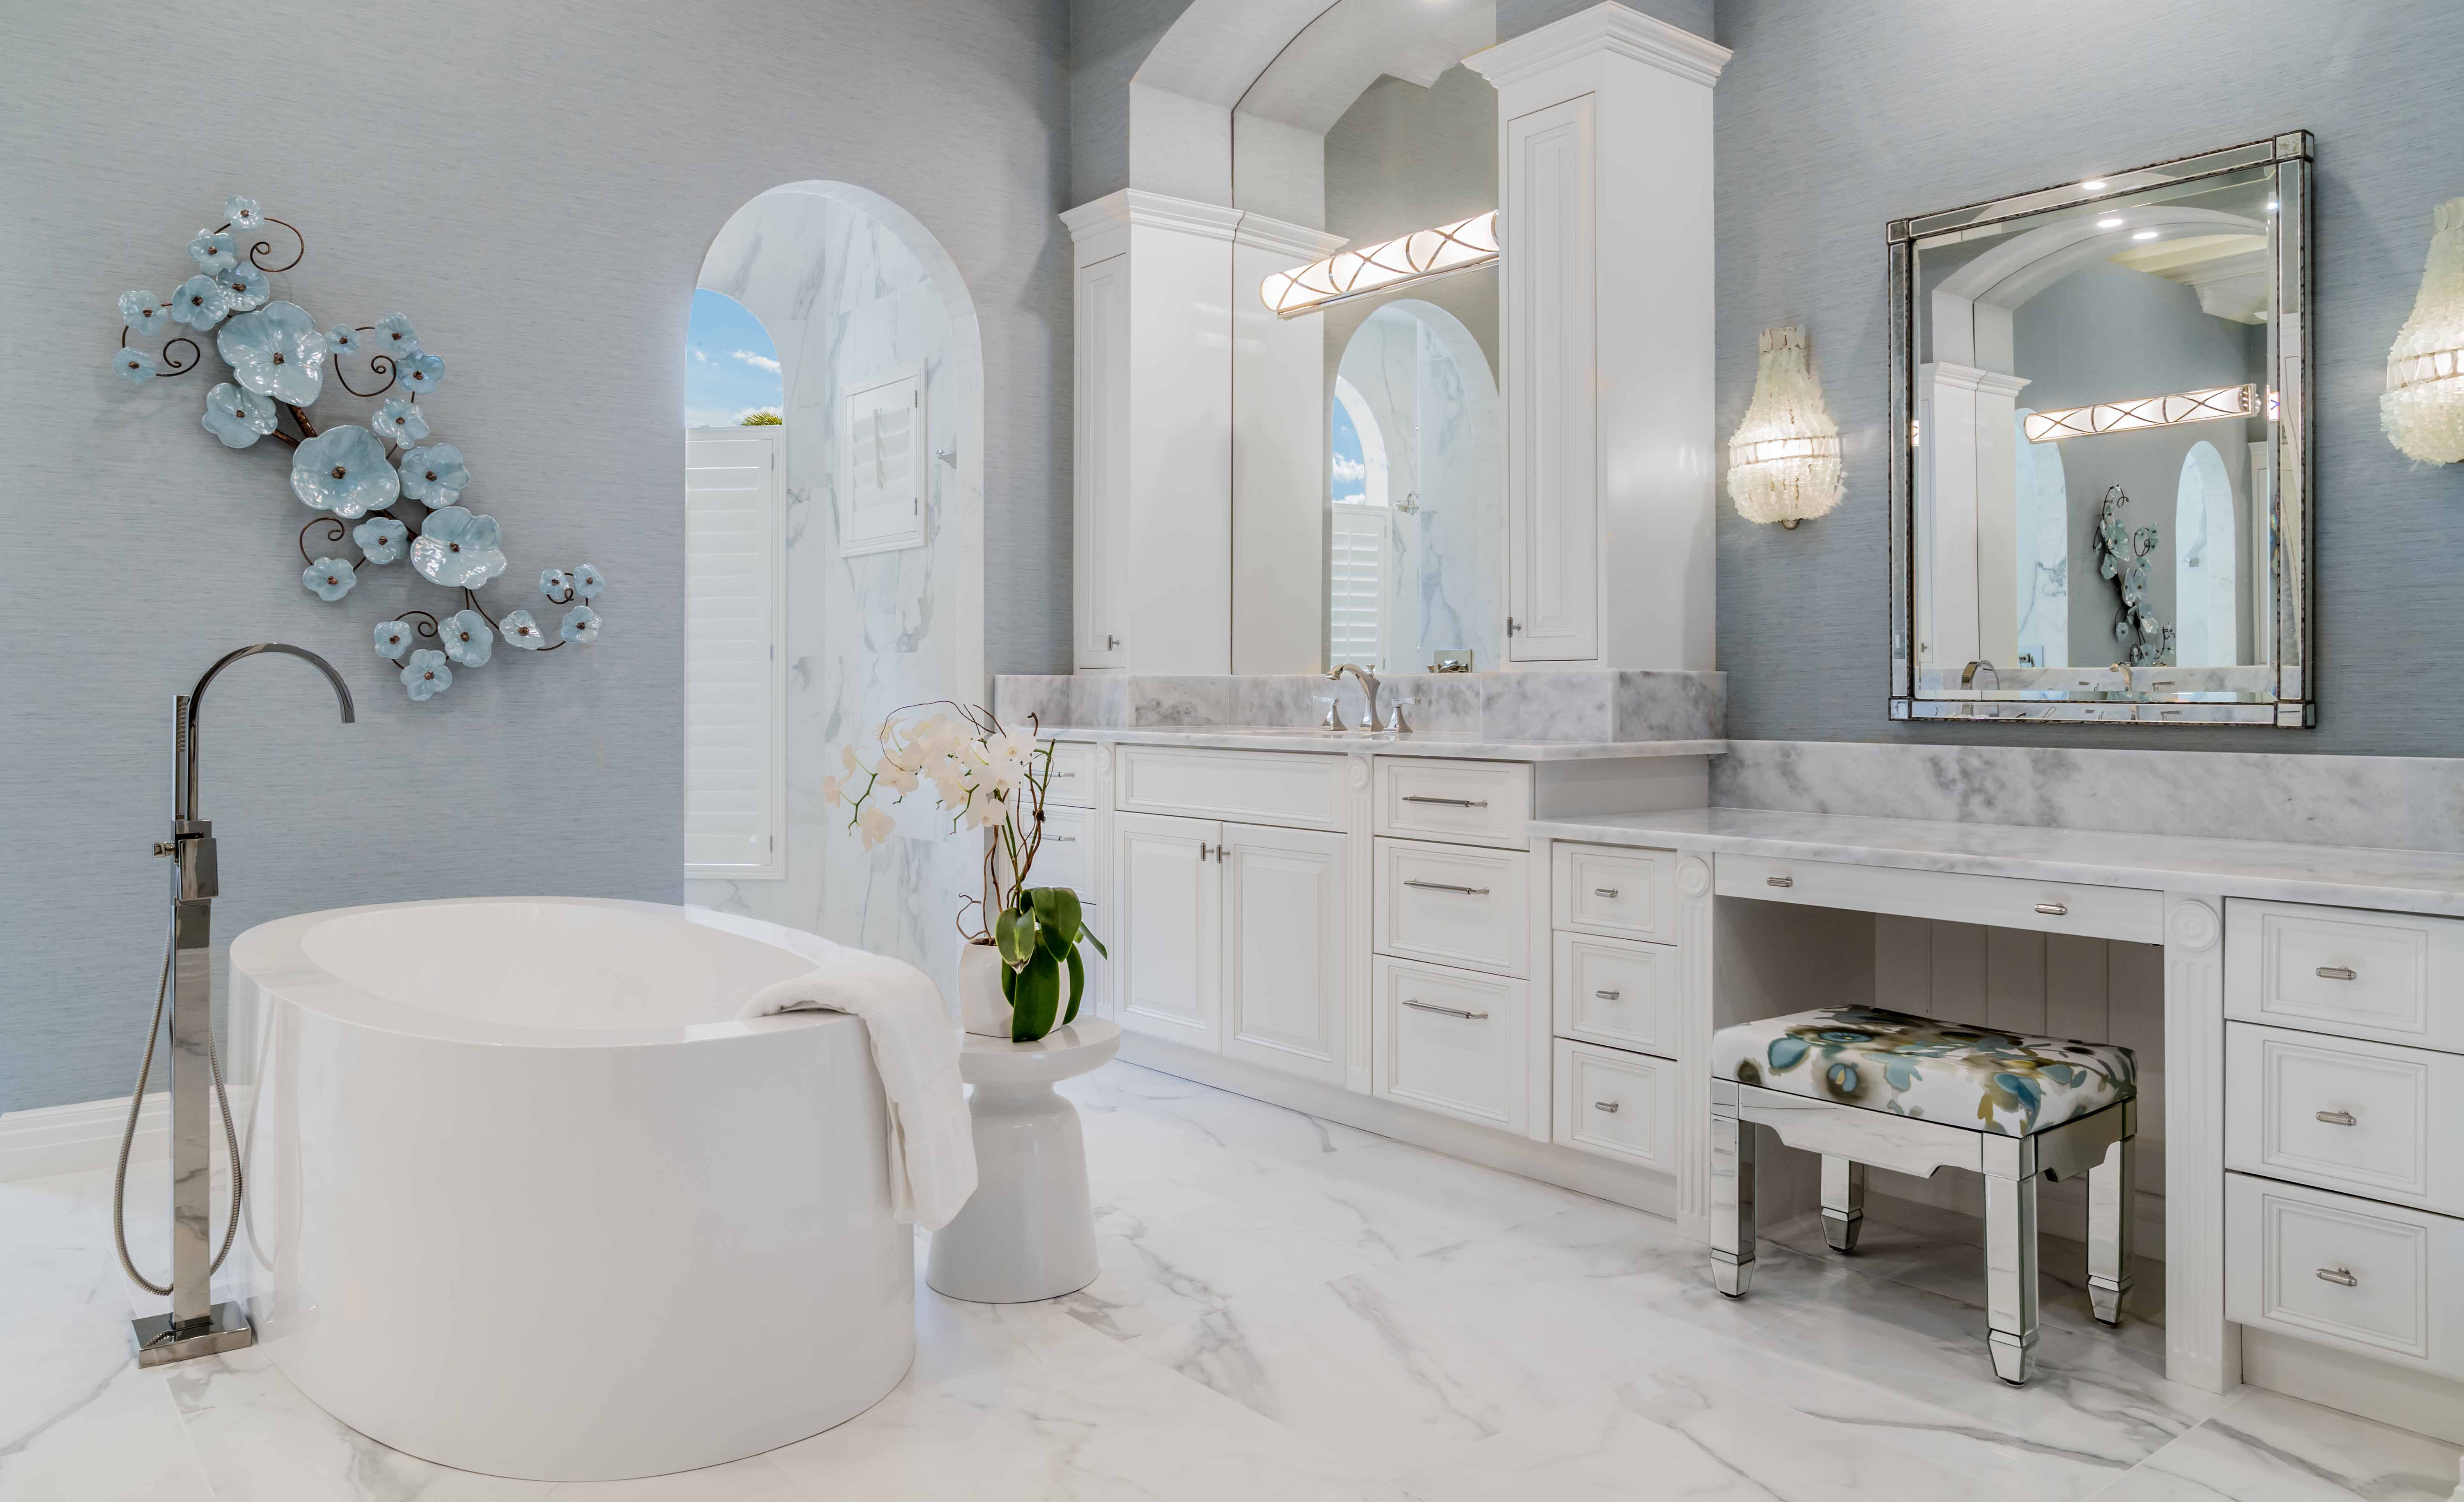 Jeffrey Fisher Home Luxury Interior Design Imagined Home Decor Custom Master Bathroom